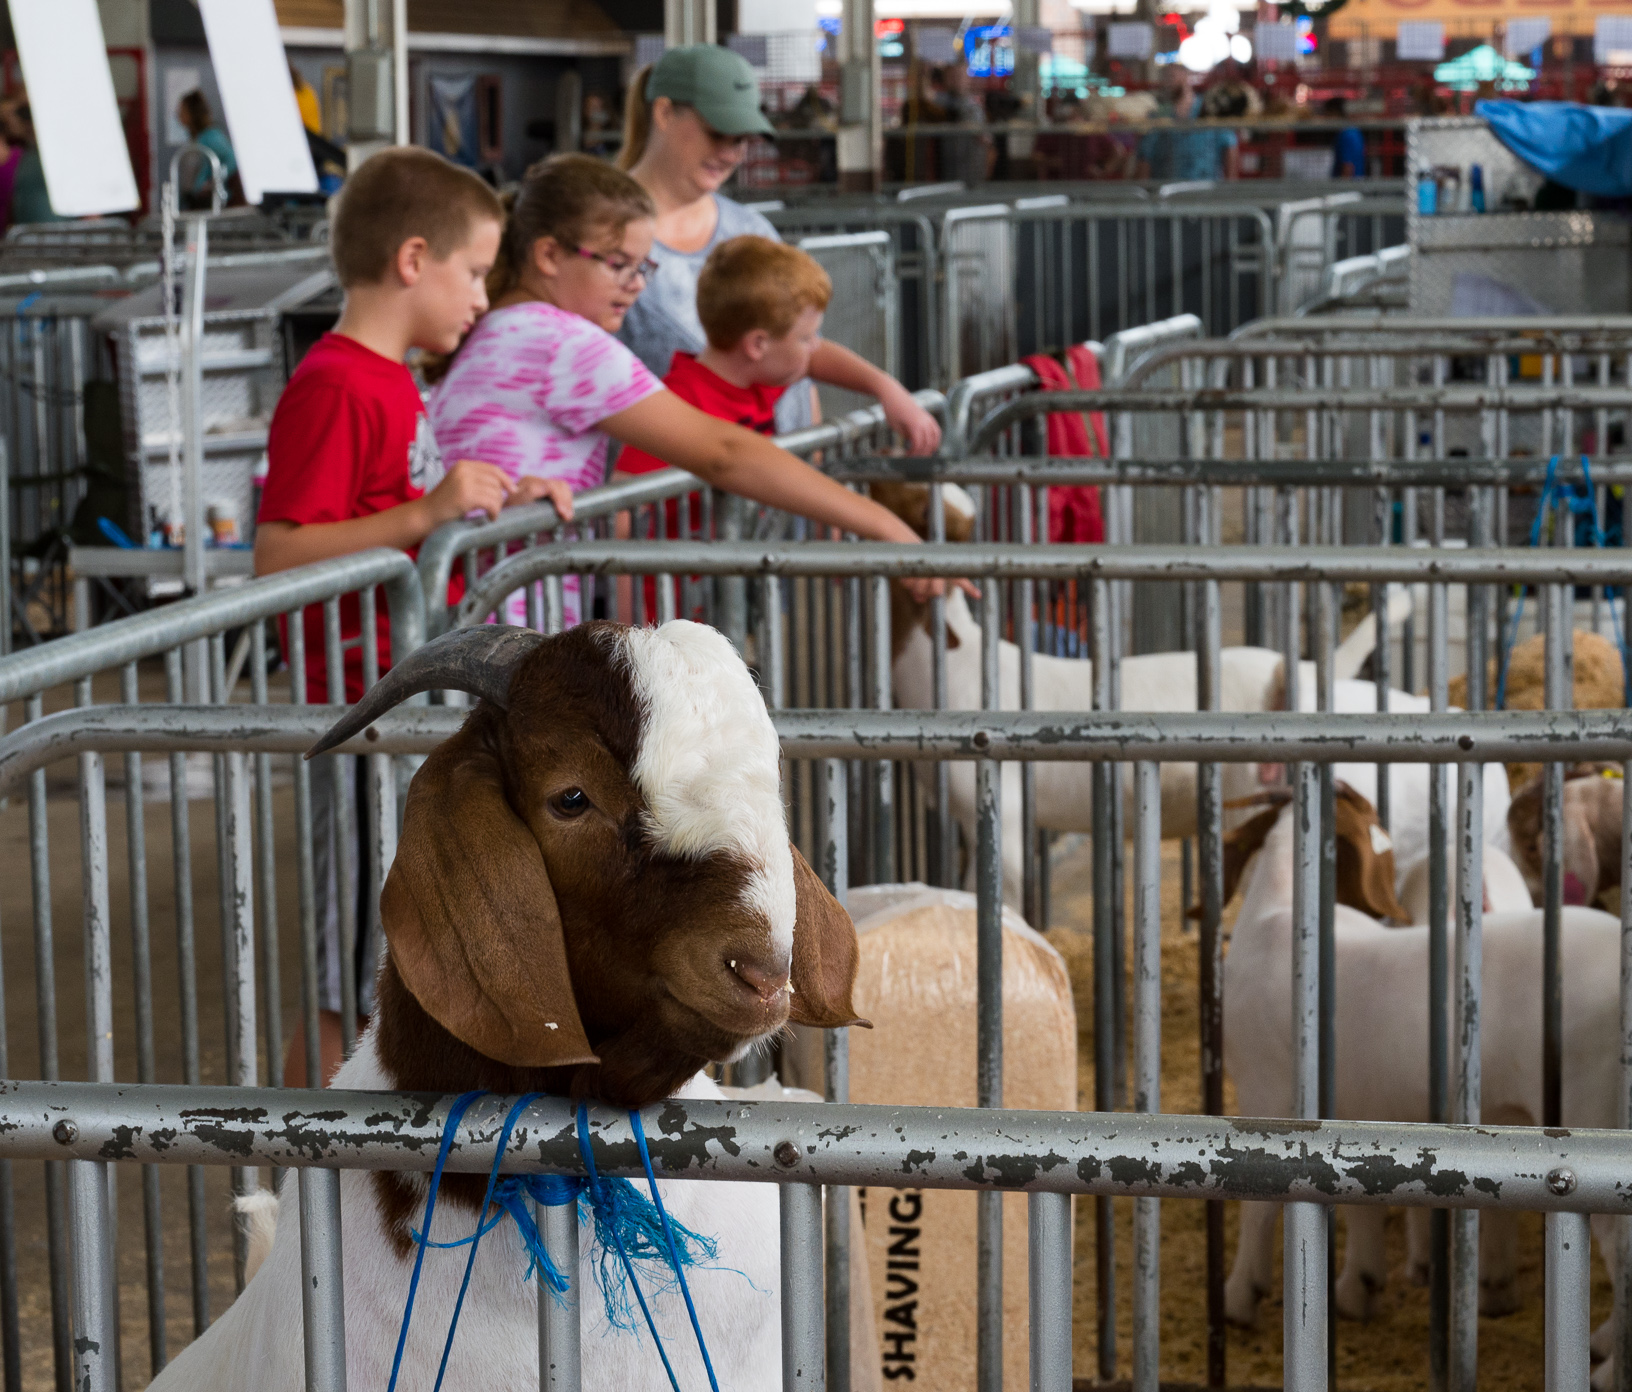 A goat looks for attention as fairgoers visit the livestock barns at the Iowa State Fair. Photo credit: Joseph L. Murphy/Iowa Soybean Association